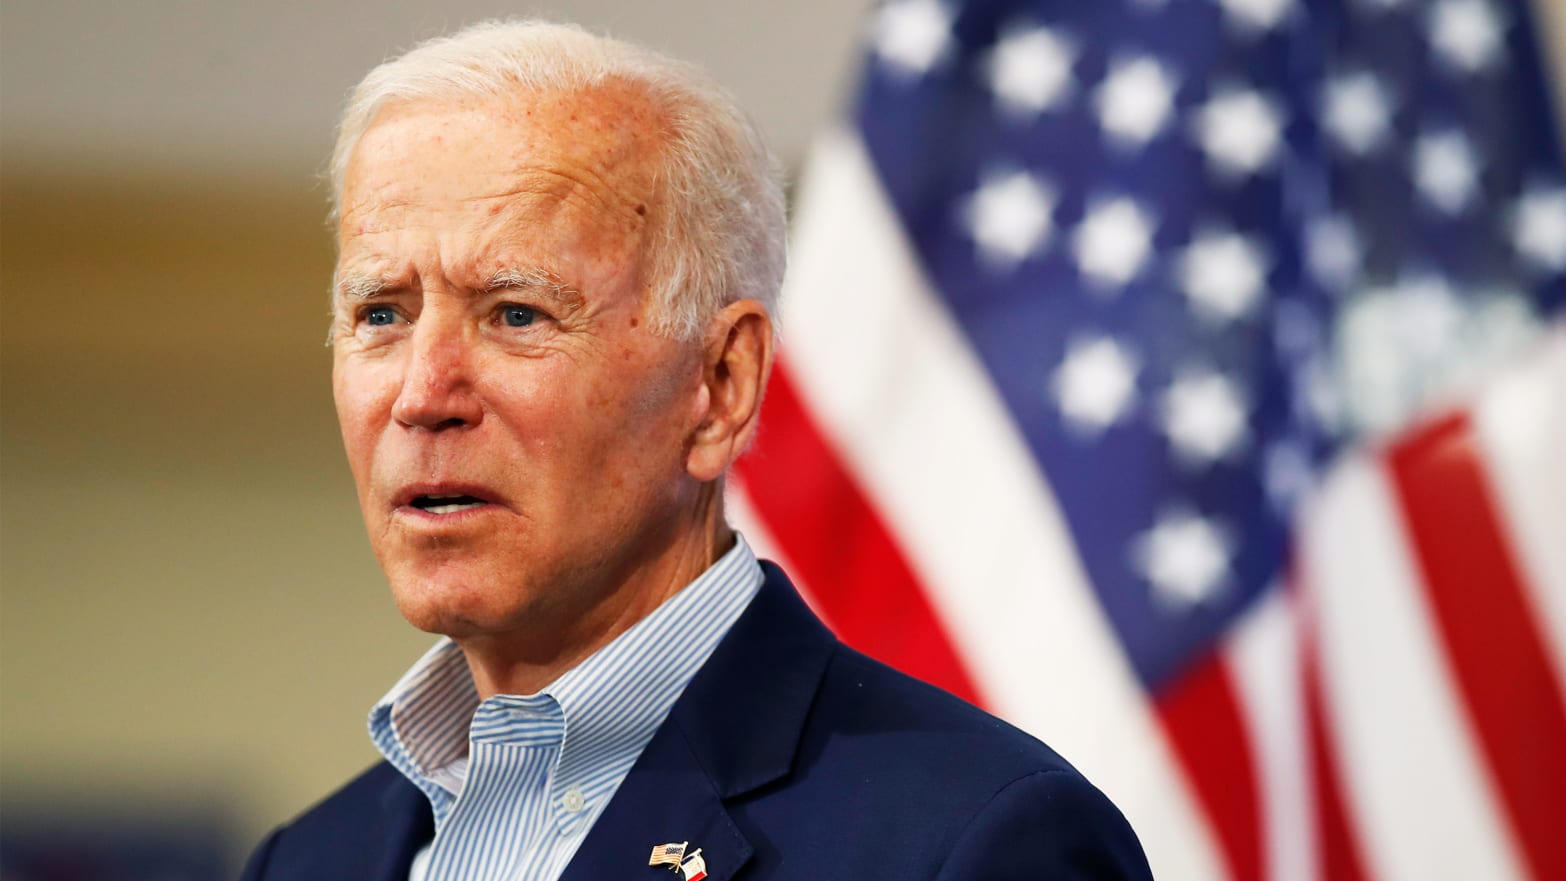 Joe Biden's 2020 Rivals Sense Blood in the Water After ...